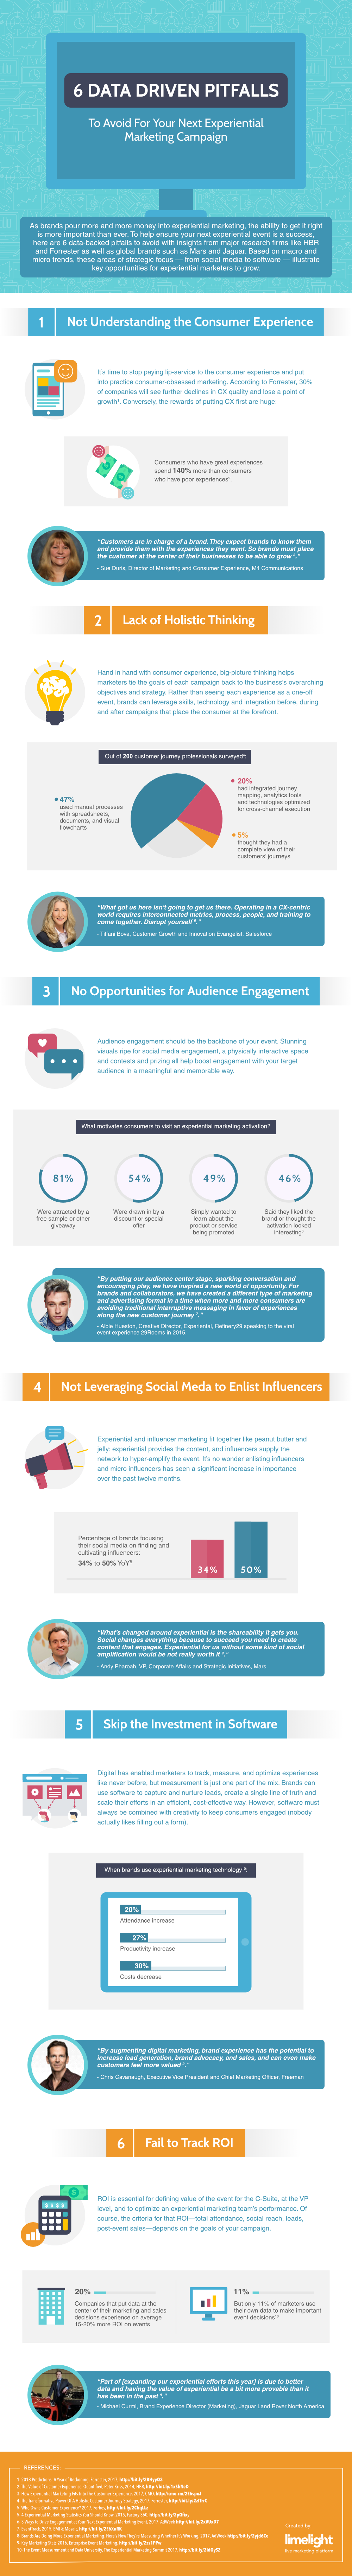 6 Data-Driven Pitfalls Experiential Marketers Should Avoid [Infographic]